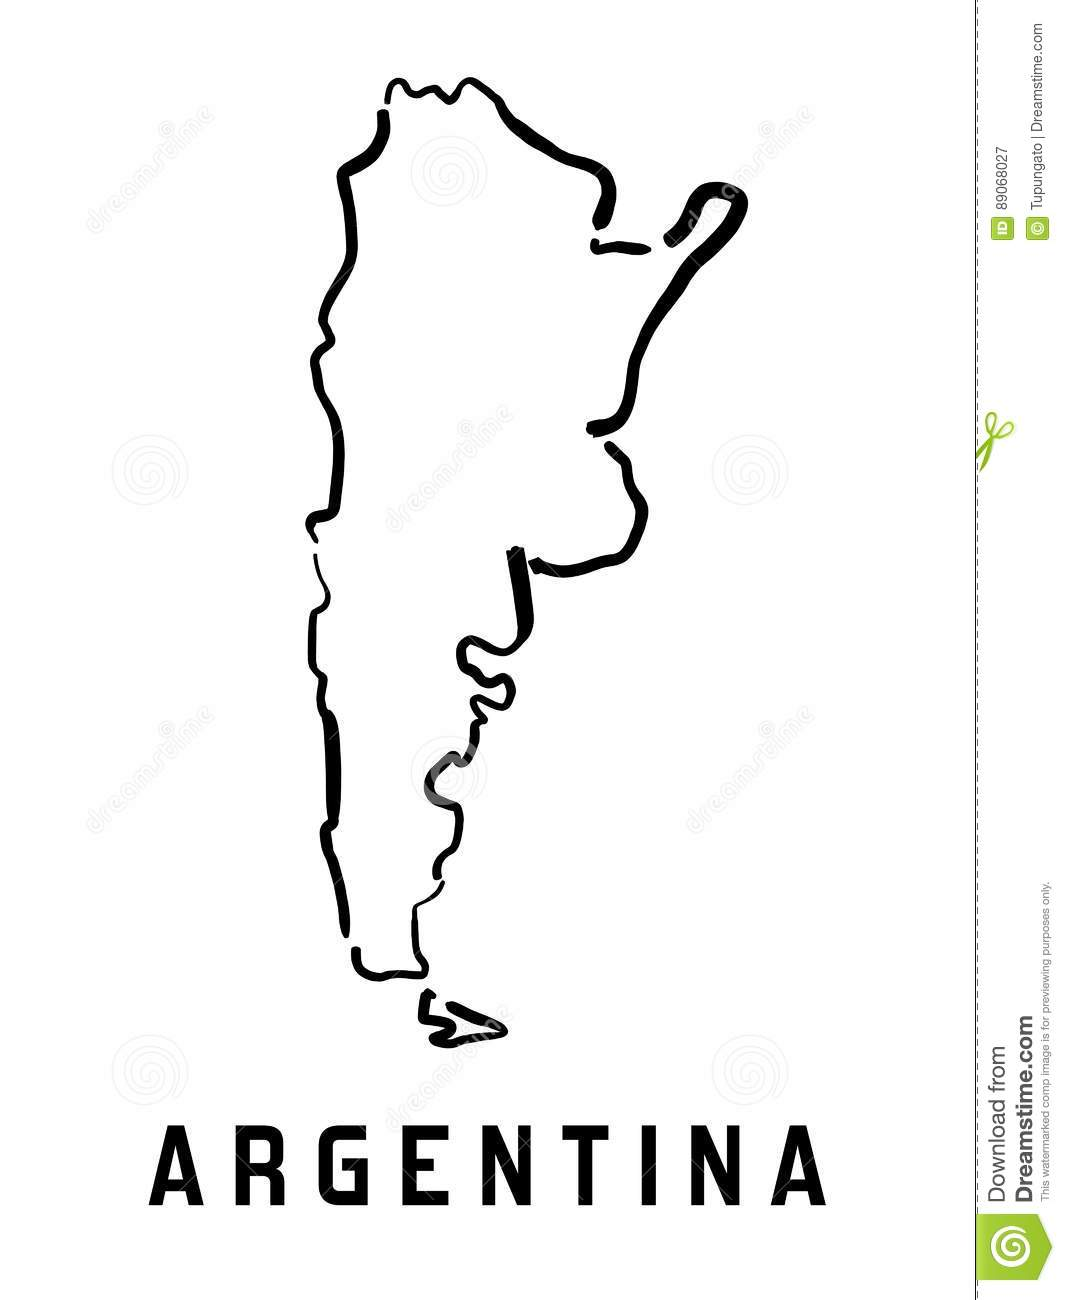 Argentina Simple Map Stock Vector Image Of Smooth State - Argentina map shape